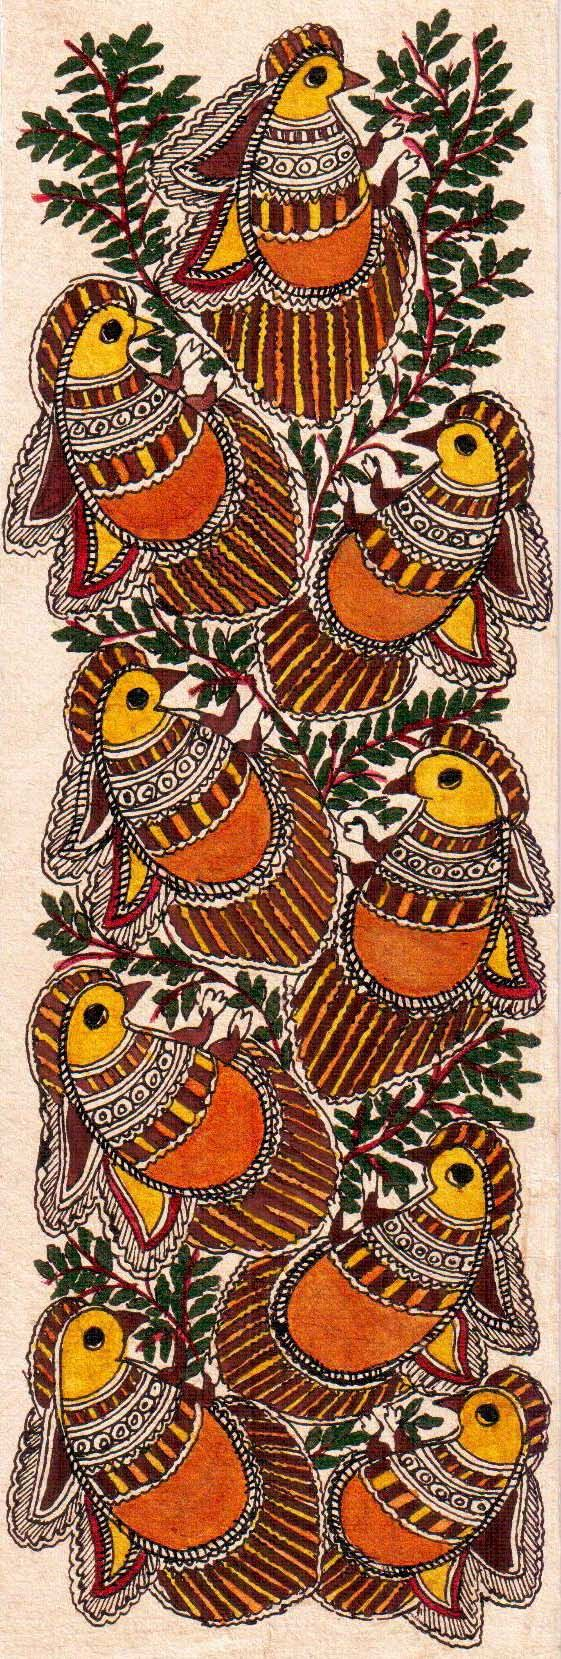 Madhubani or Mithila Paintings are said to have originated during the period of Ramayana, when King Janaka commissioned artists to do paintings during the wedding of his daughter, Sita to Lord Ram. The paintings usually depicted nature and Hindu religious motifs, the themes generally revolve around Hindu deities.http://handicrafts.exoticabazaar.com/view/4831-7-bird106.html